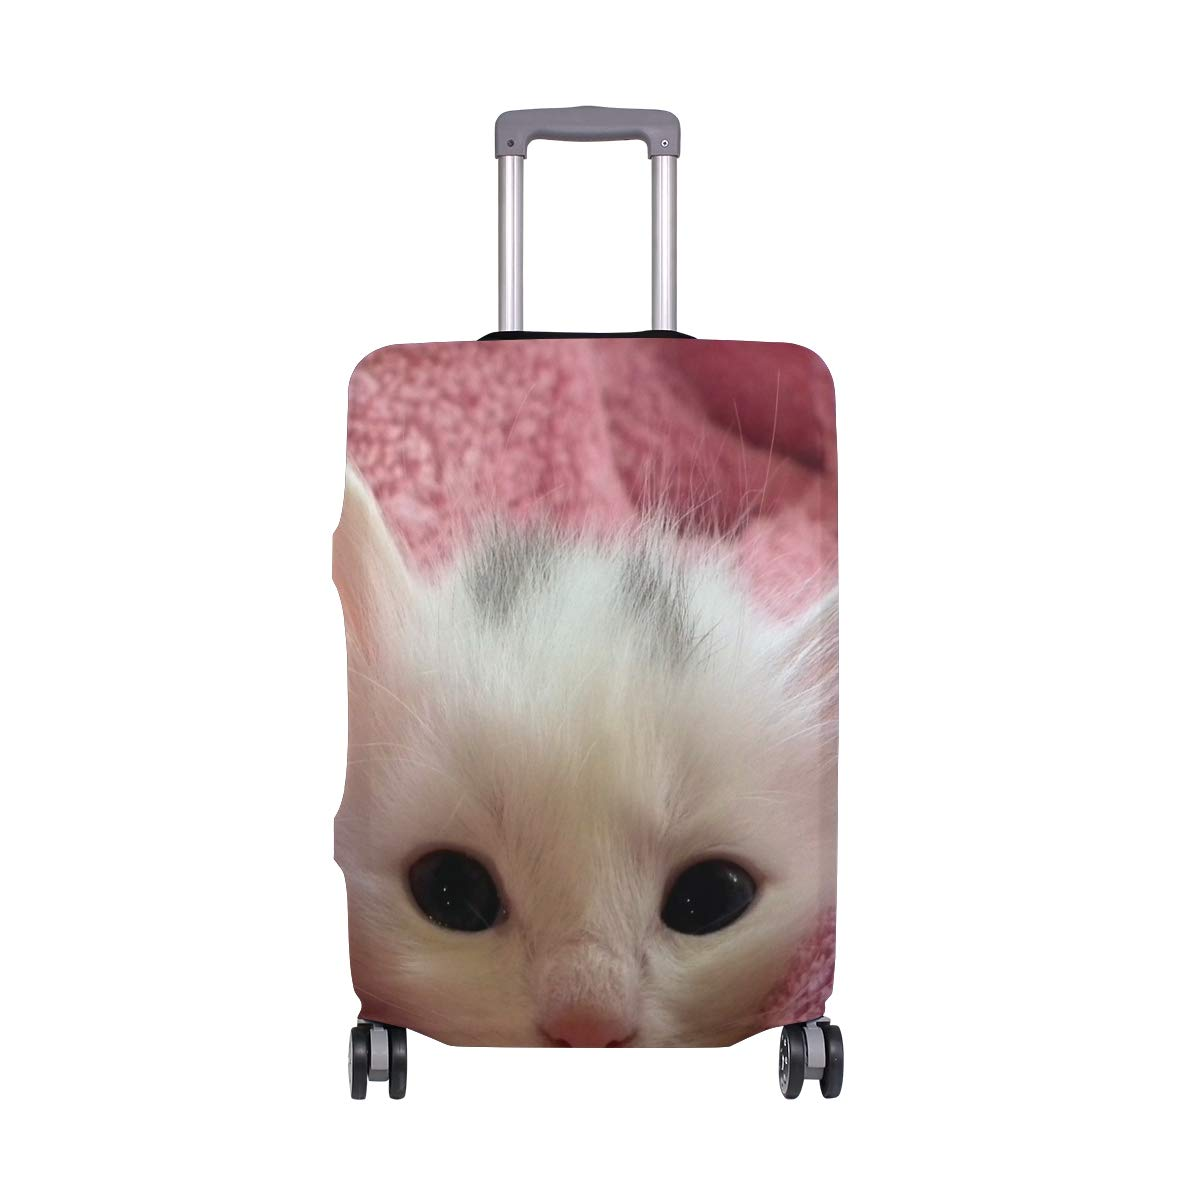 Travel Luggage Cover Cat Page Little Cute Suitcase Protector Fits 18-20 Inch Washable Baggage Covers